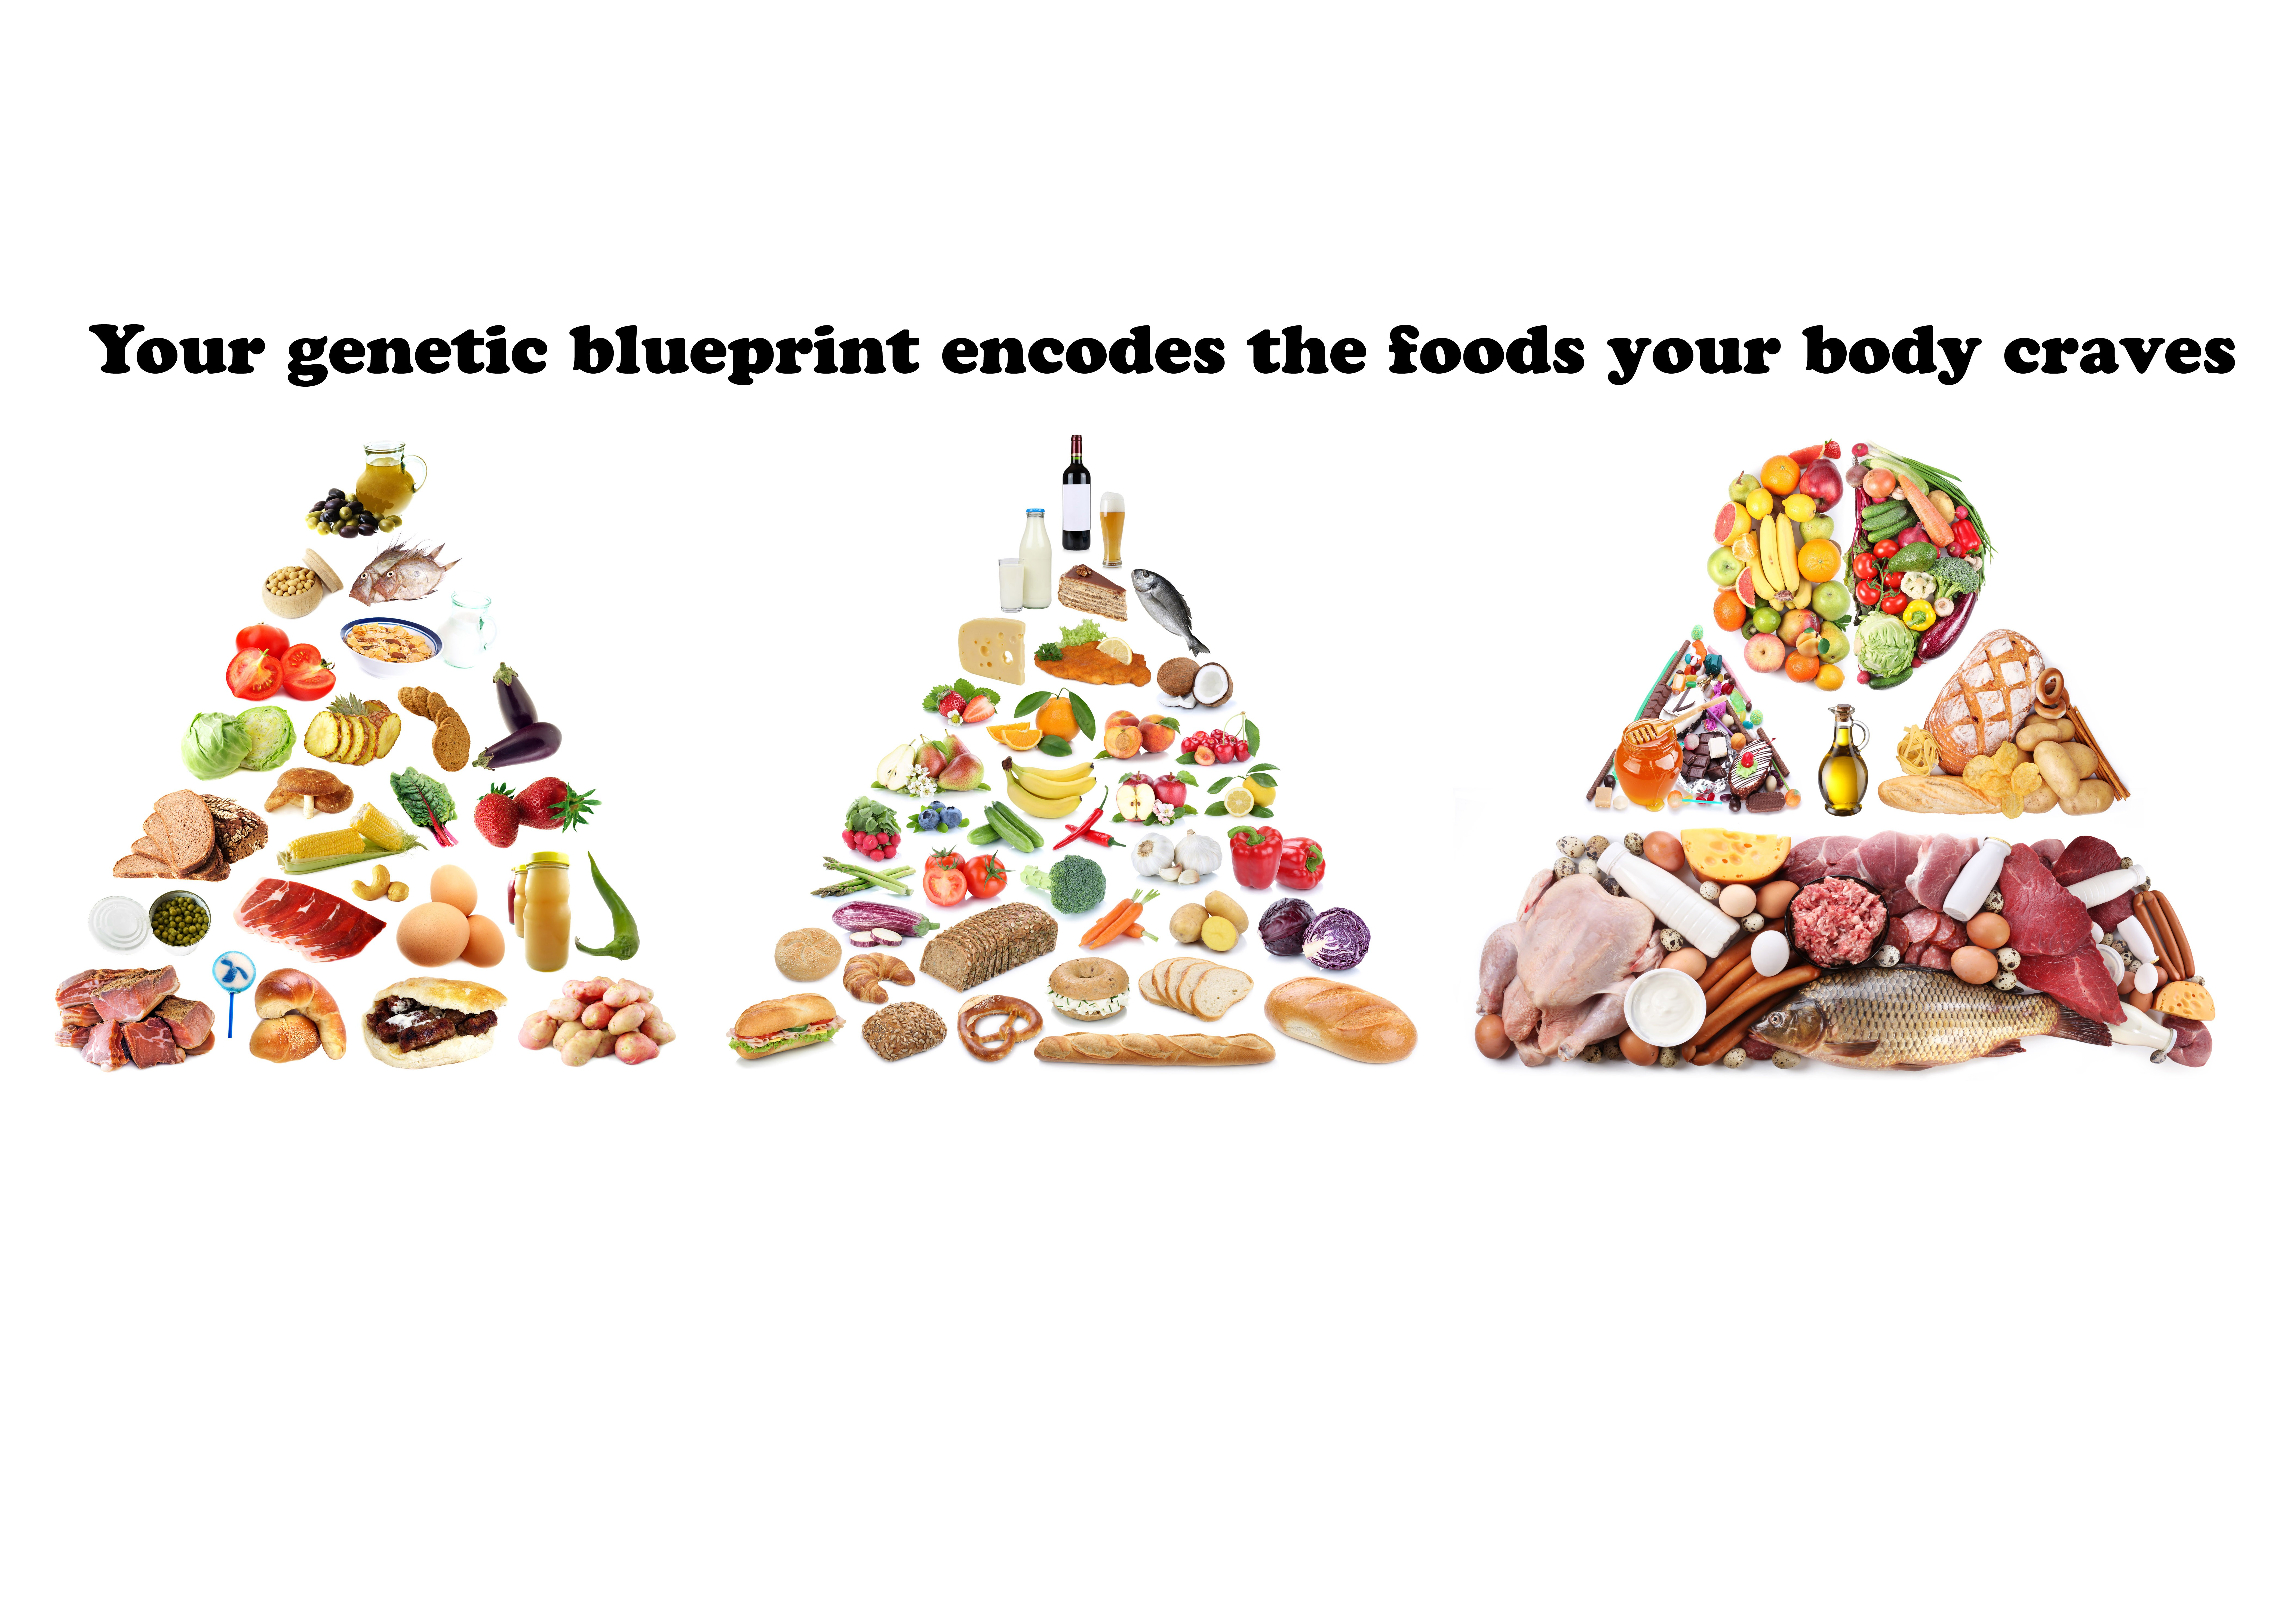 Which food pyramid is for you?